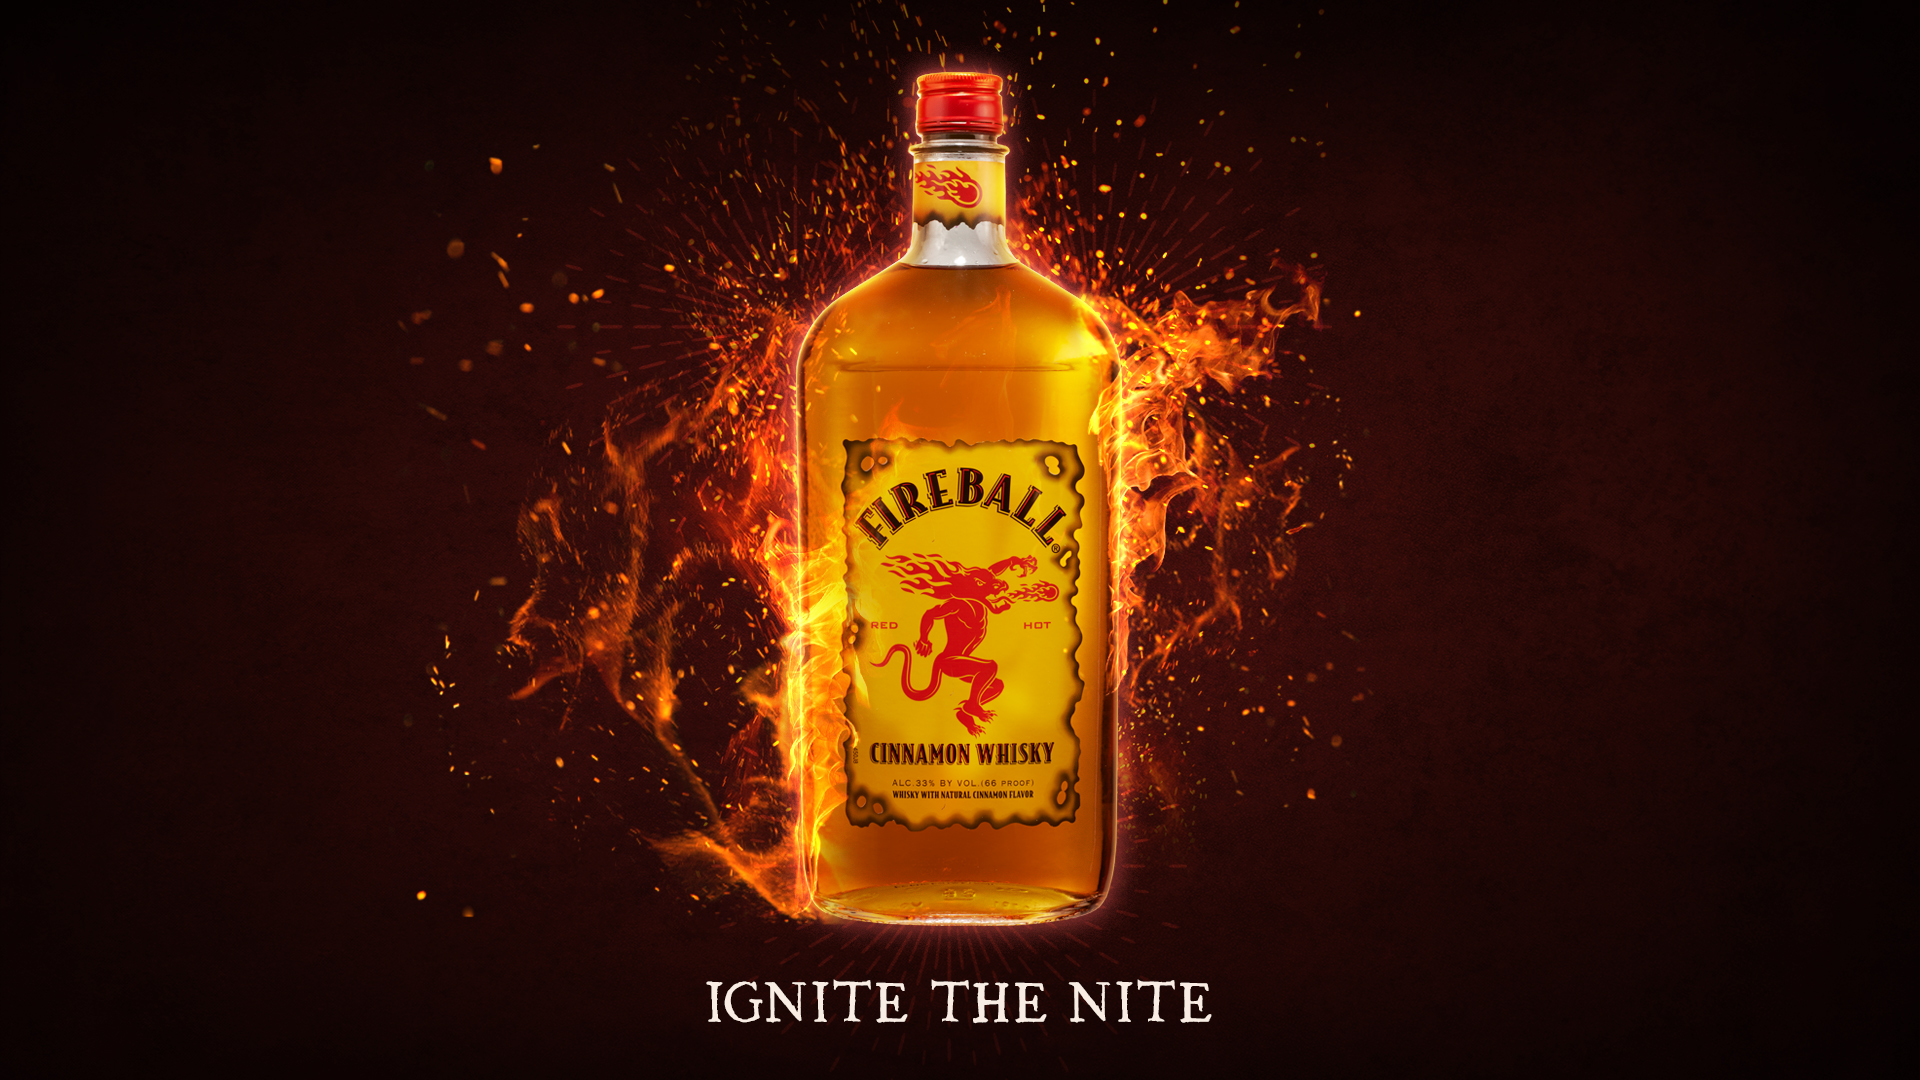 fireball whisky desktop wallpaper 66394